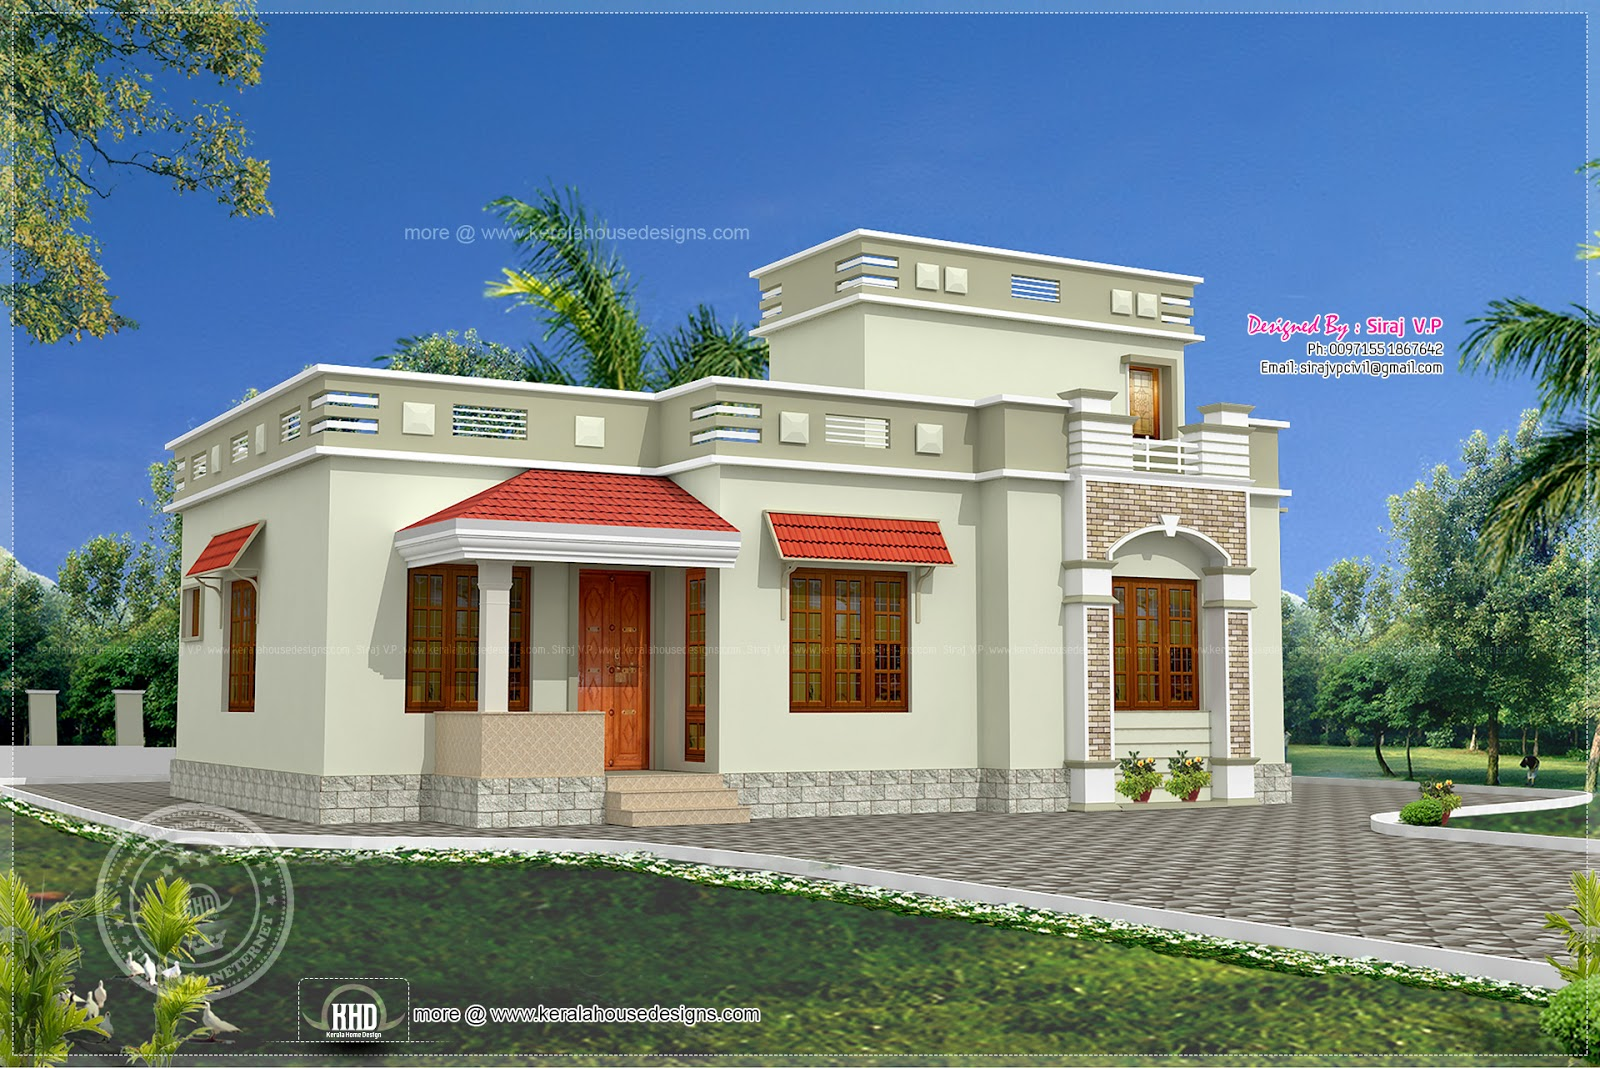 Low budget kerala style home in 1075 house for Low budget home plans